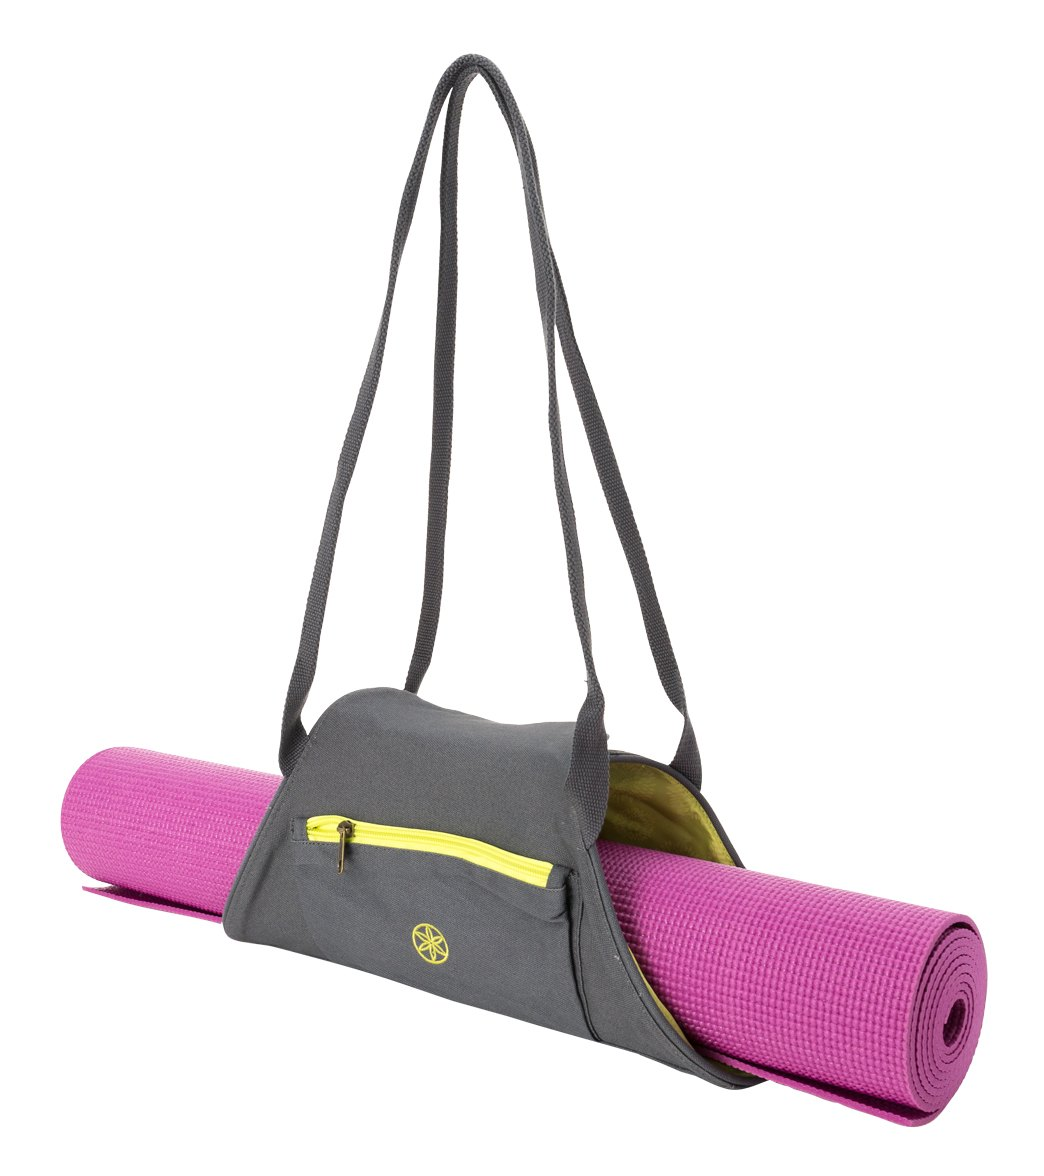 Gaiam At Yogaoutlet Com